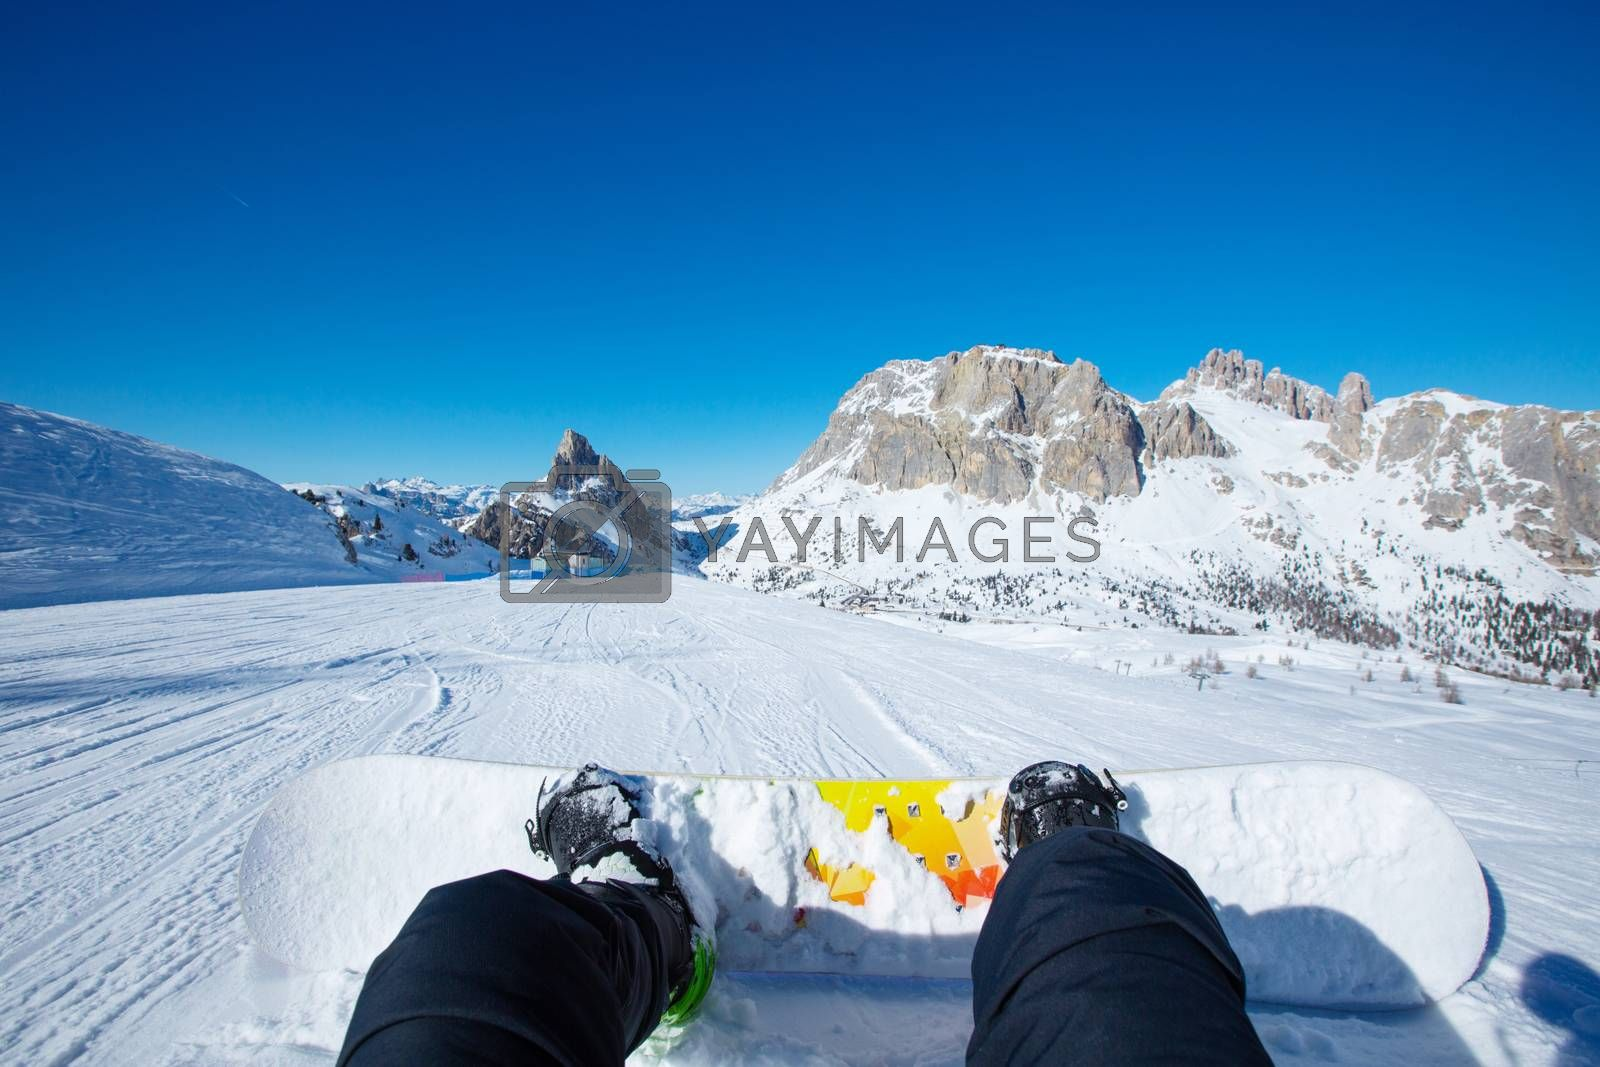 Snowboarder sitting on ski slope at resort in Dolomites Italian Alps view on legs and snowboard